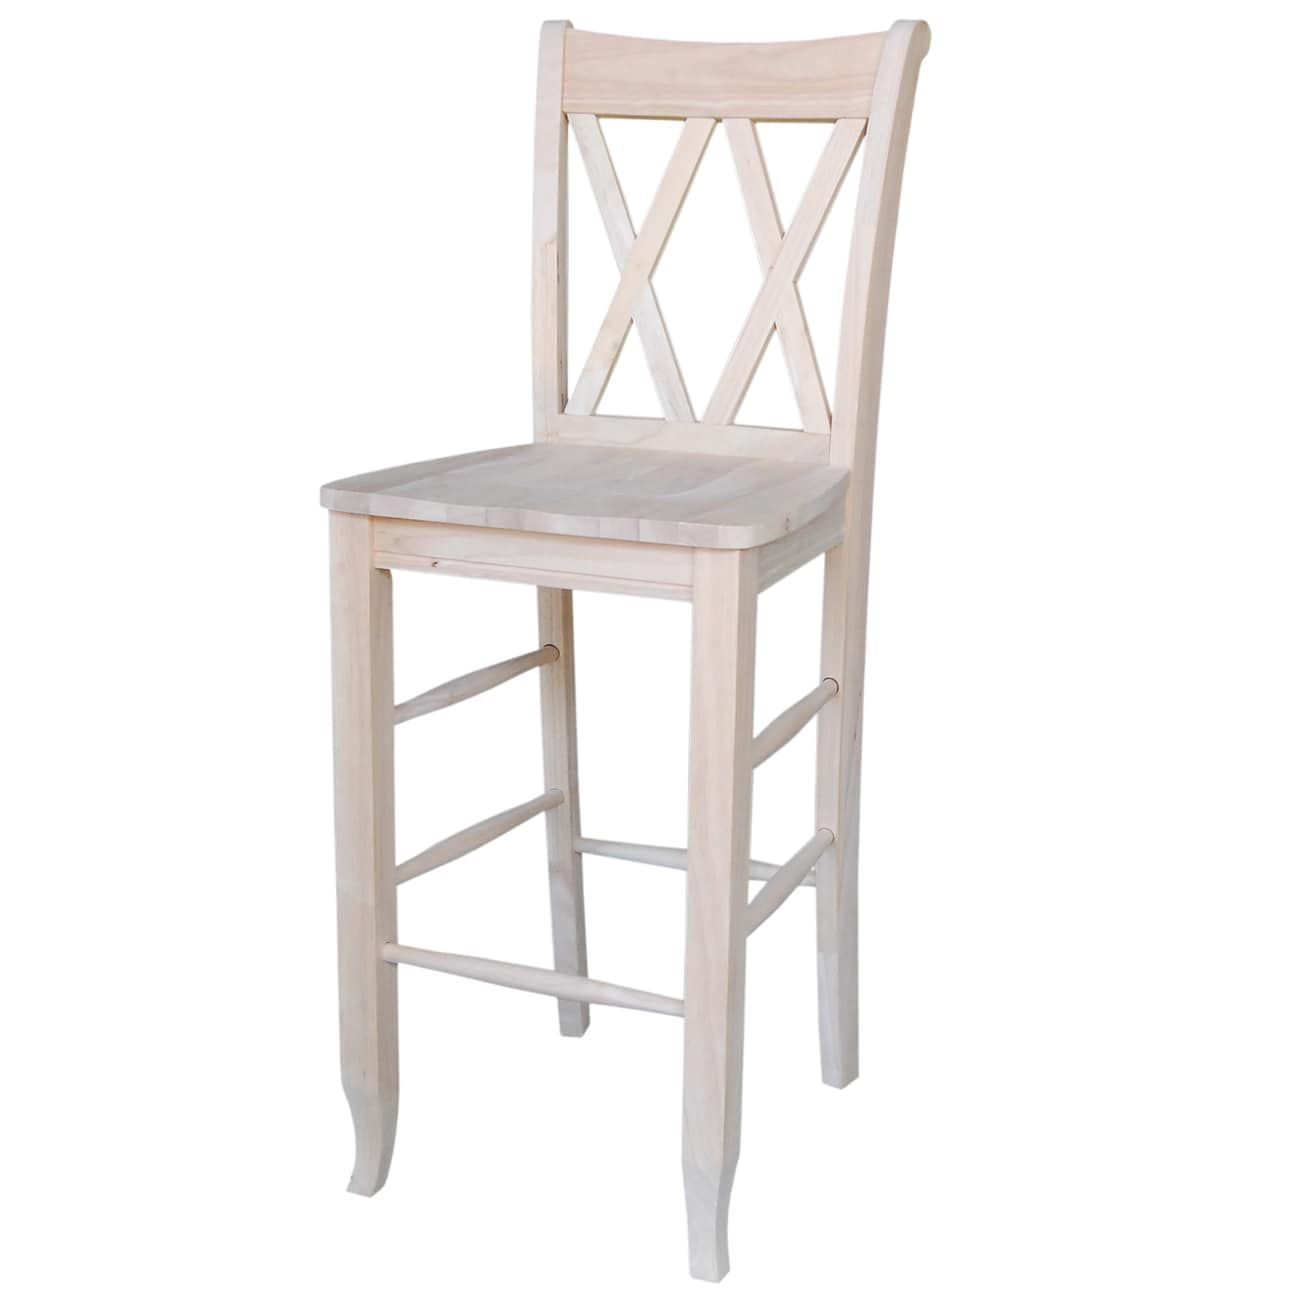 Outstanding Contemporary White Wood 30 Inch Double X Back Bar Stool With Gmtry Best Dining Table And Chair Ideas Images Gmtryco